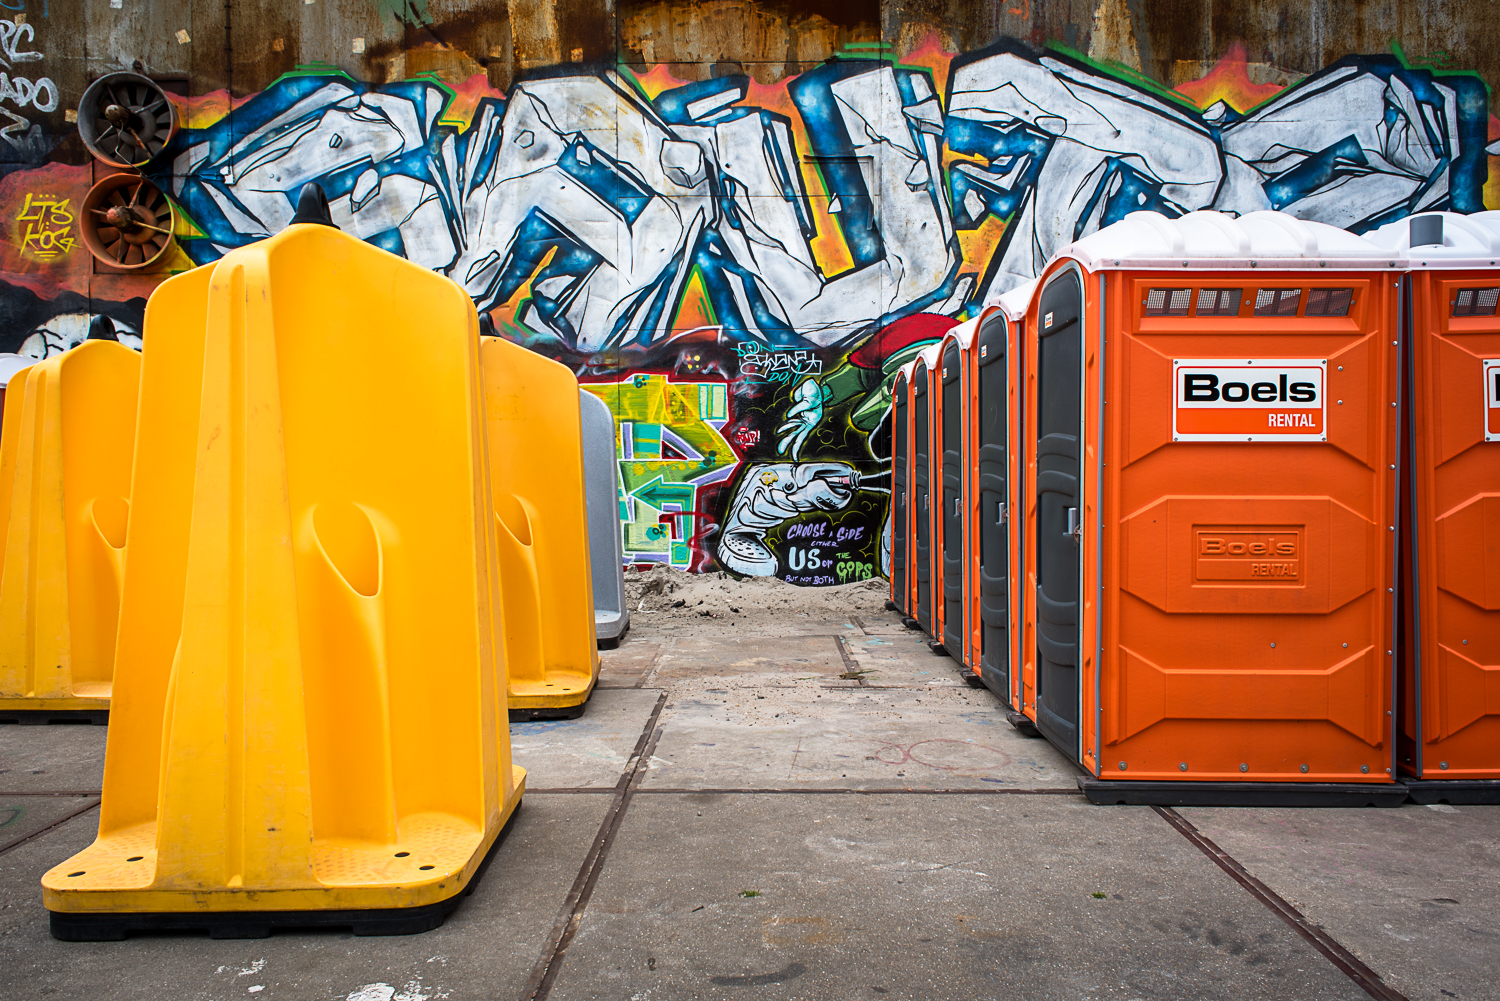 © Ayash Basu. Portable toilets gel well with the background and are moved easily to festival and performance venues as needed, within minutes.